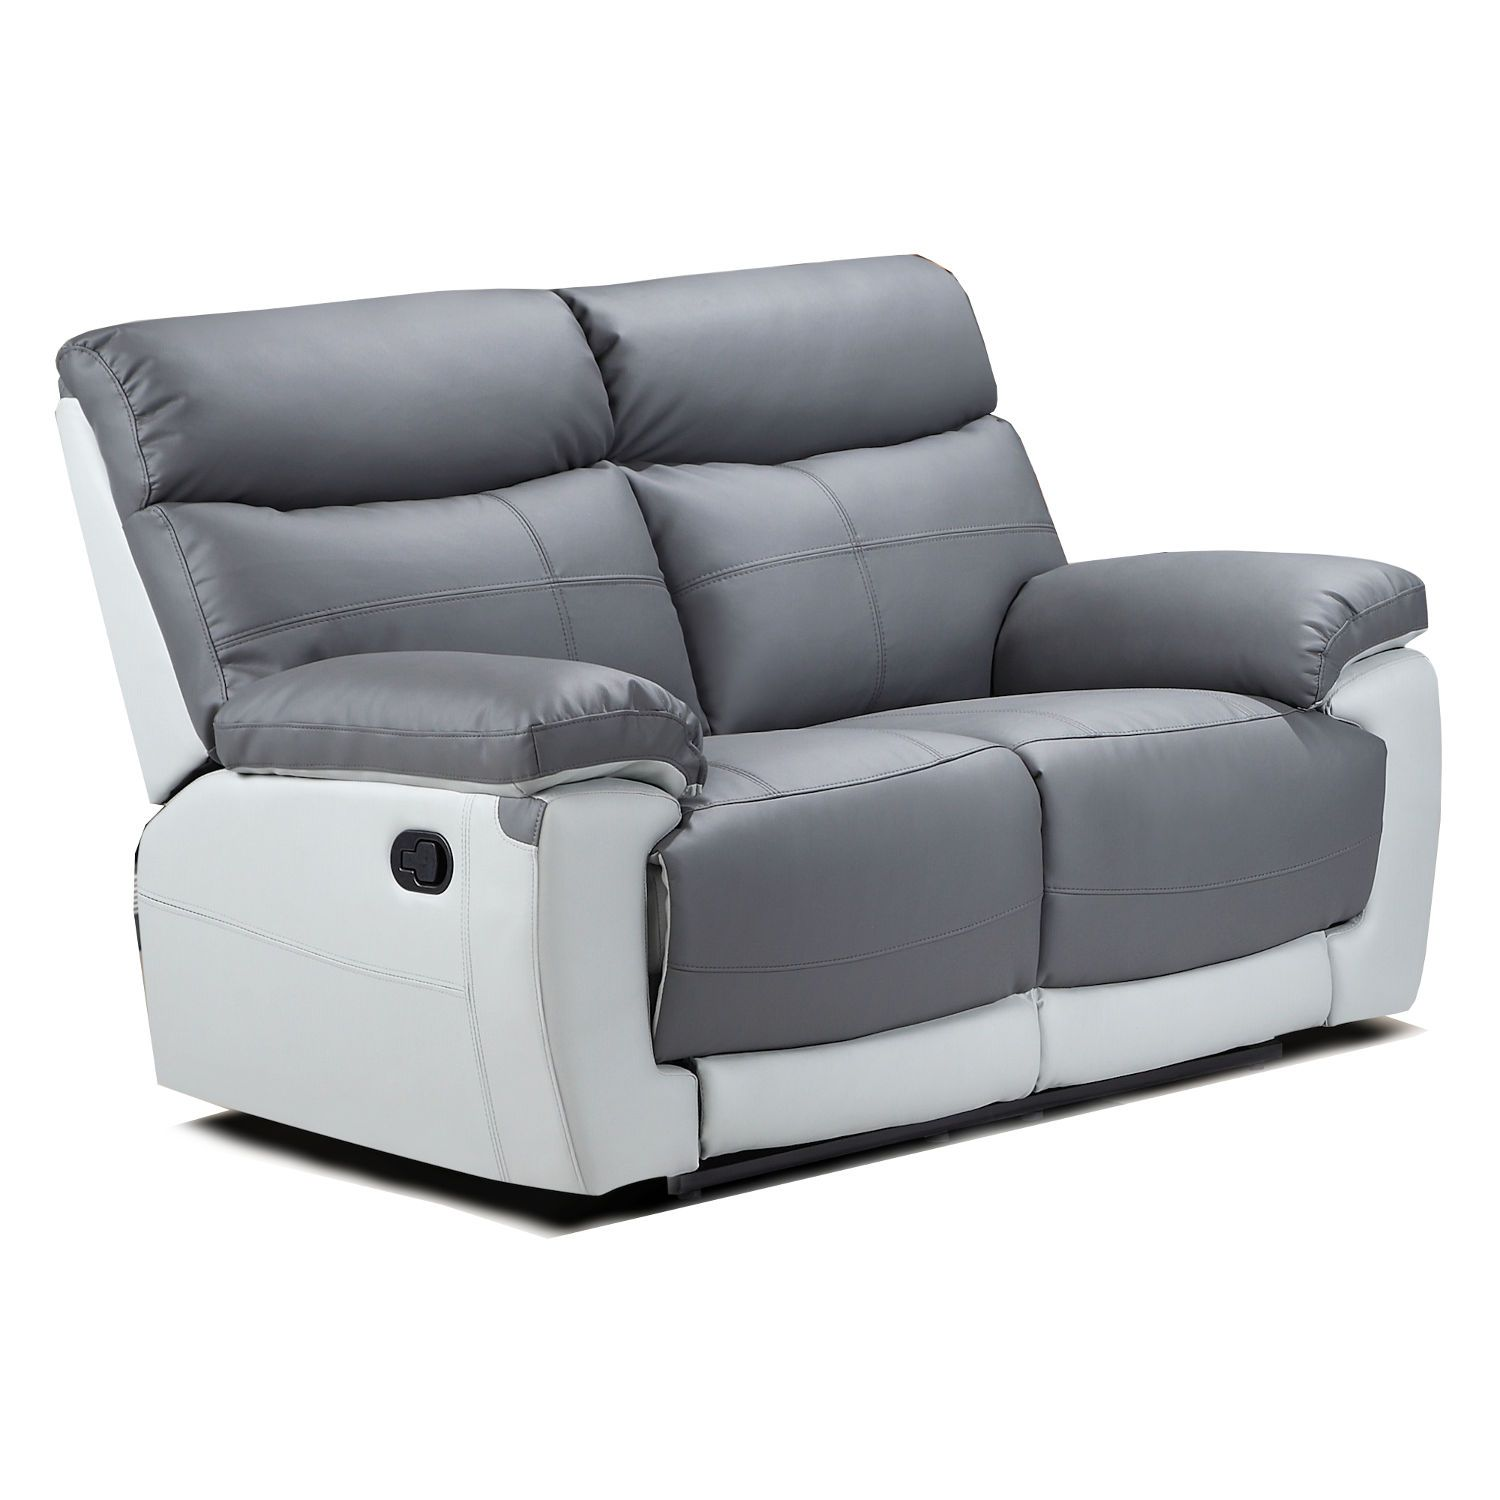 Duo Lexi 2 Seater Leather Recliner Sofa